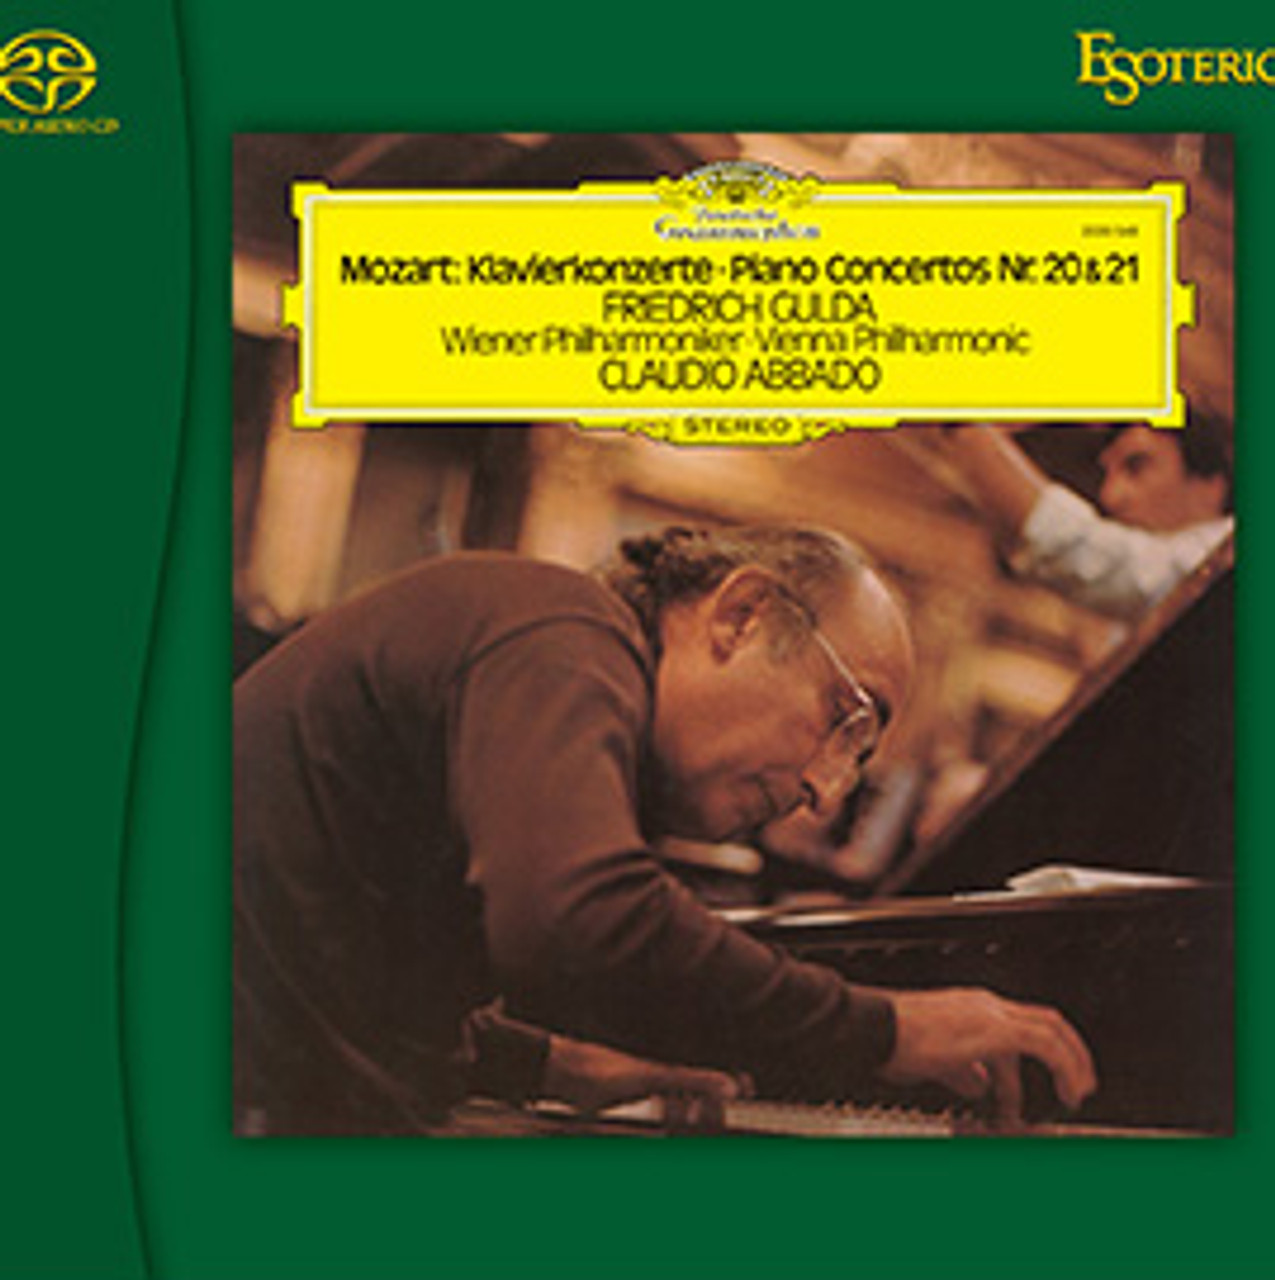 Mozart Piano Concerto No.20 and 21 Esoteric SACD